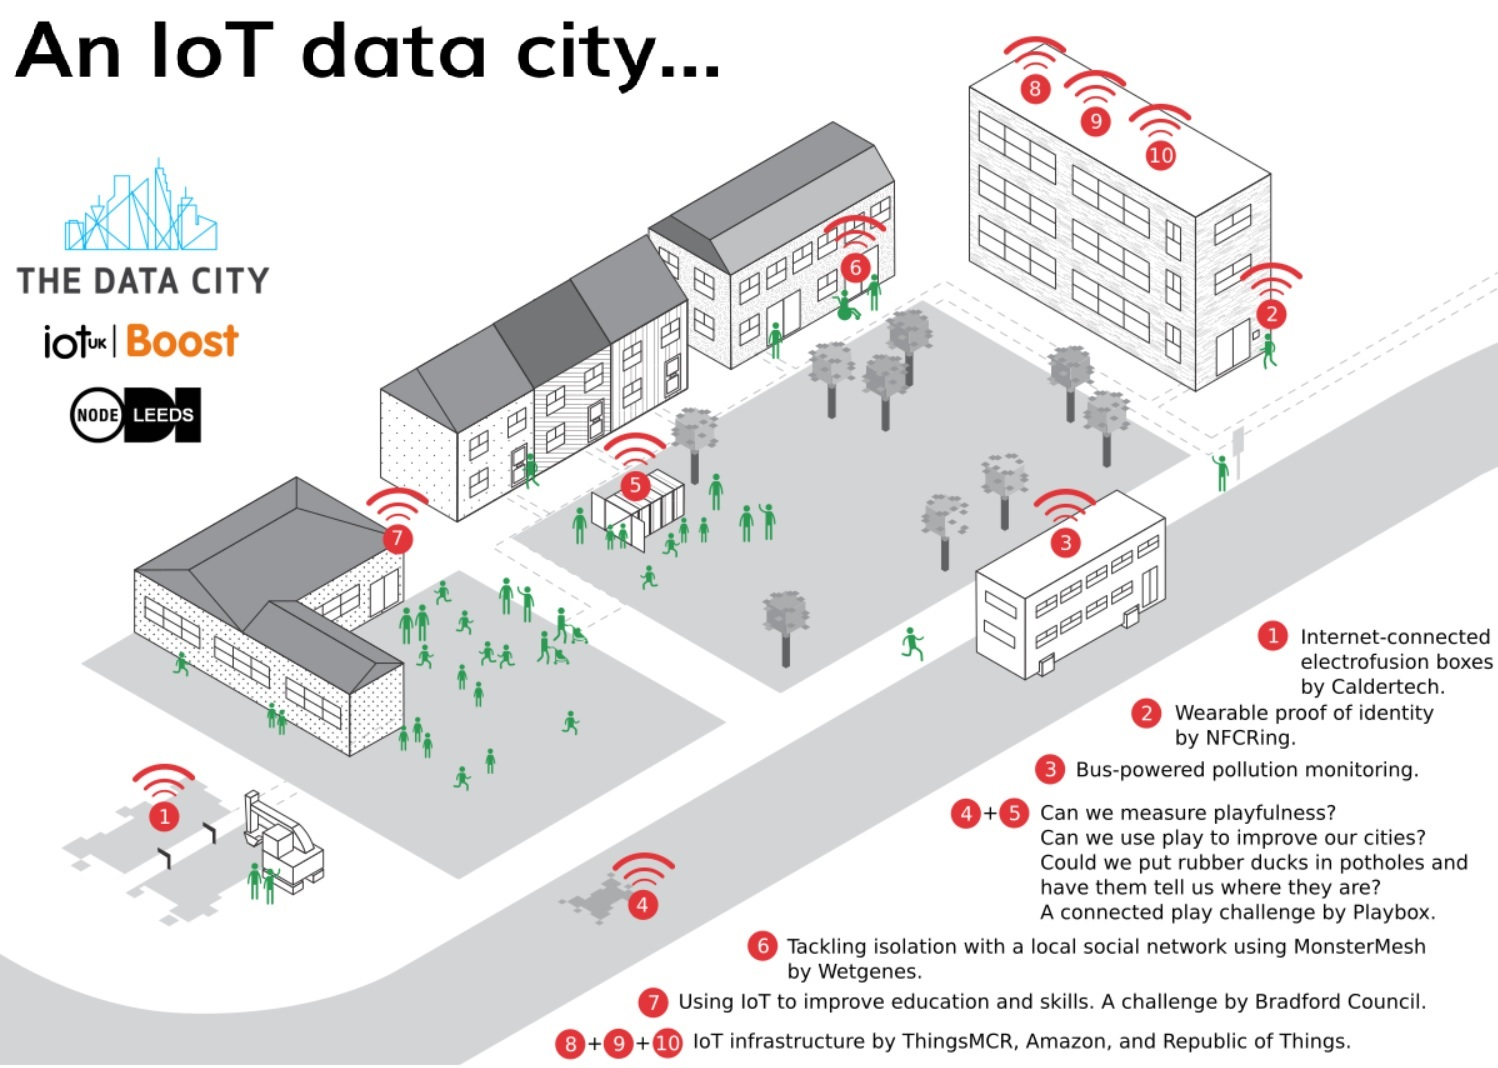 What might an IoT data city look like?